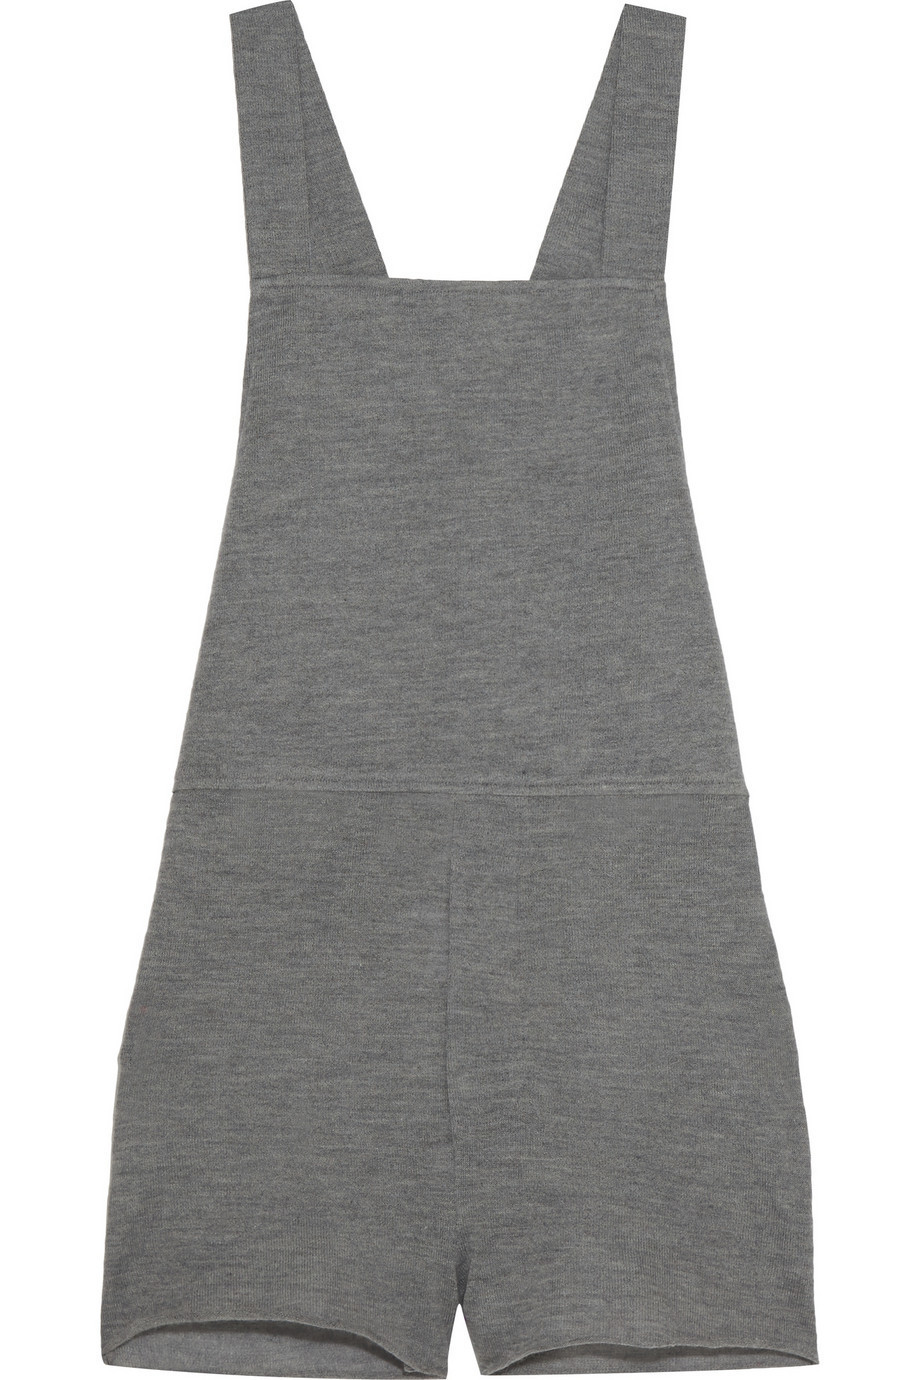 The Elder Statesman Cashmere and Silk-Blend Playsuit in anthracite